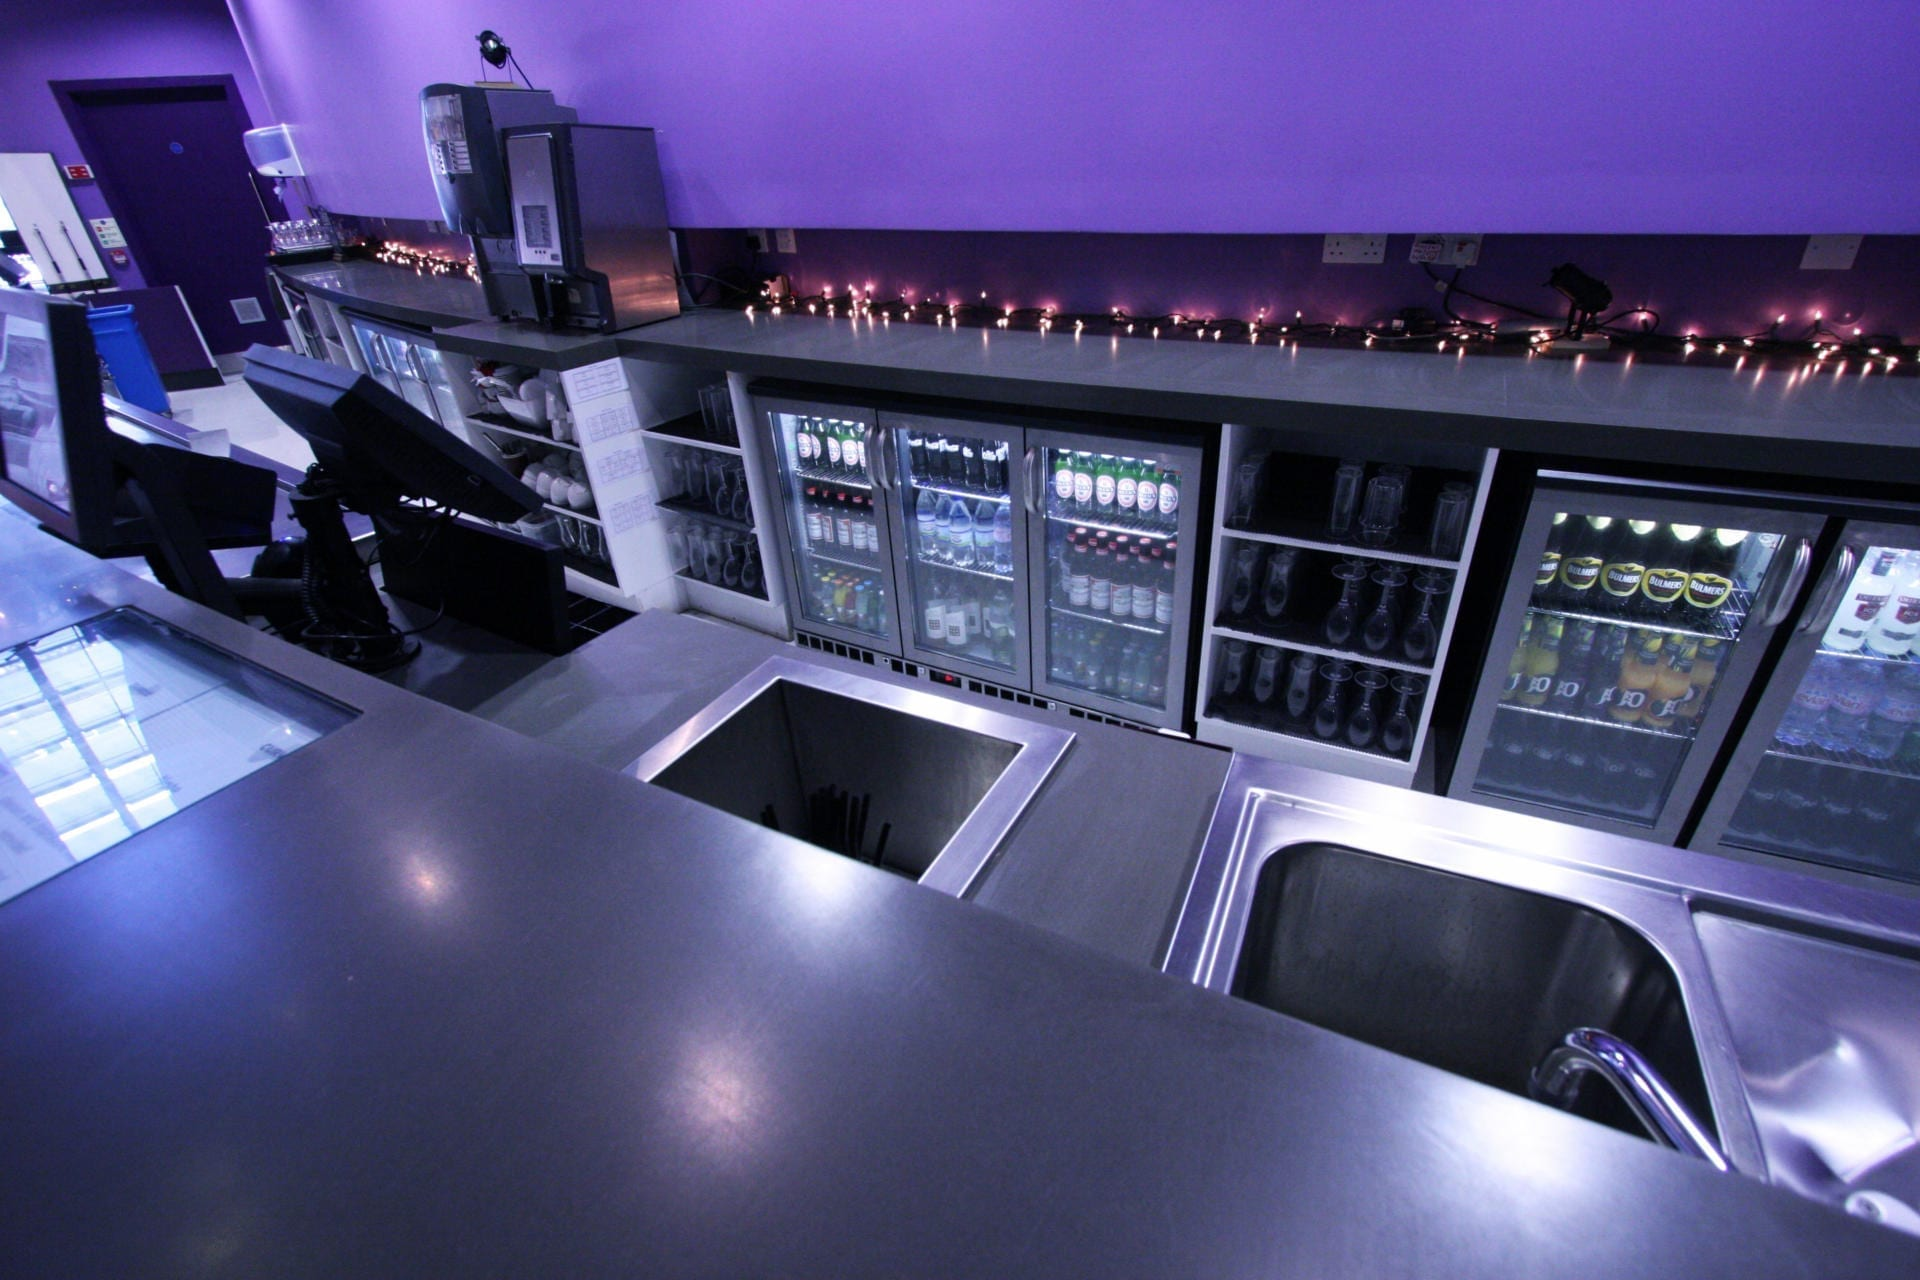 Leicester_City_Council_Leicester_Cafe_Bar_Front_of_house_Servery_Food_Display_spacecatering_2